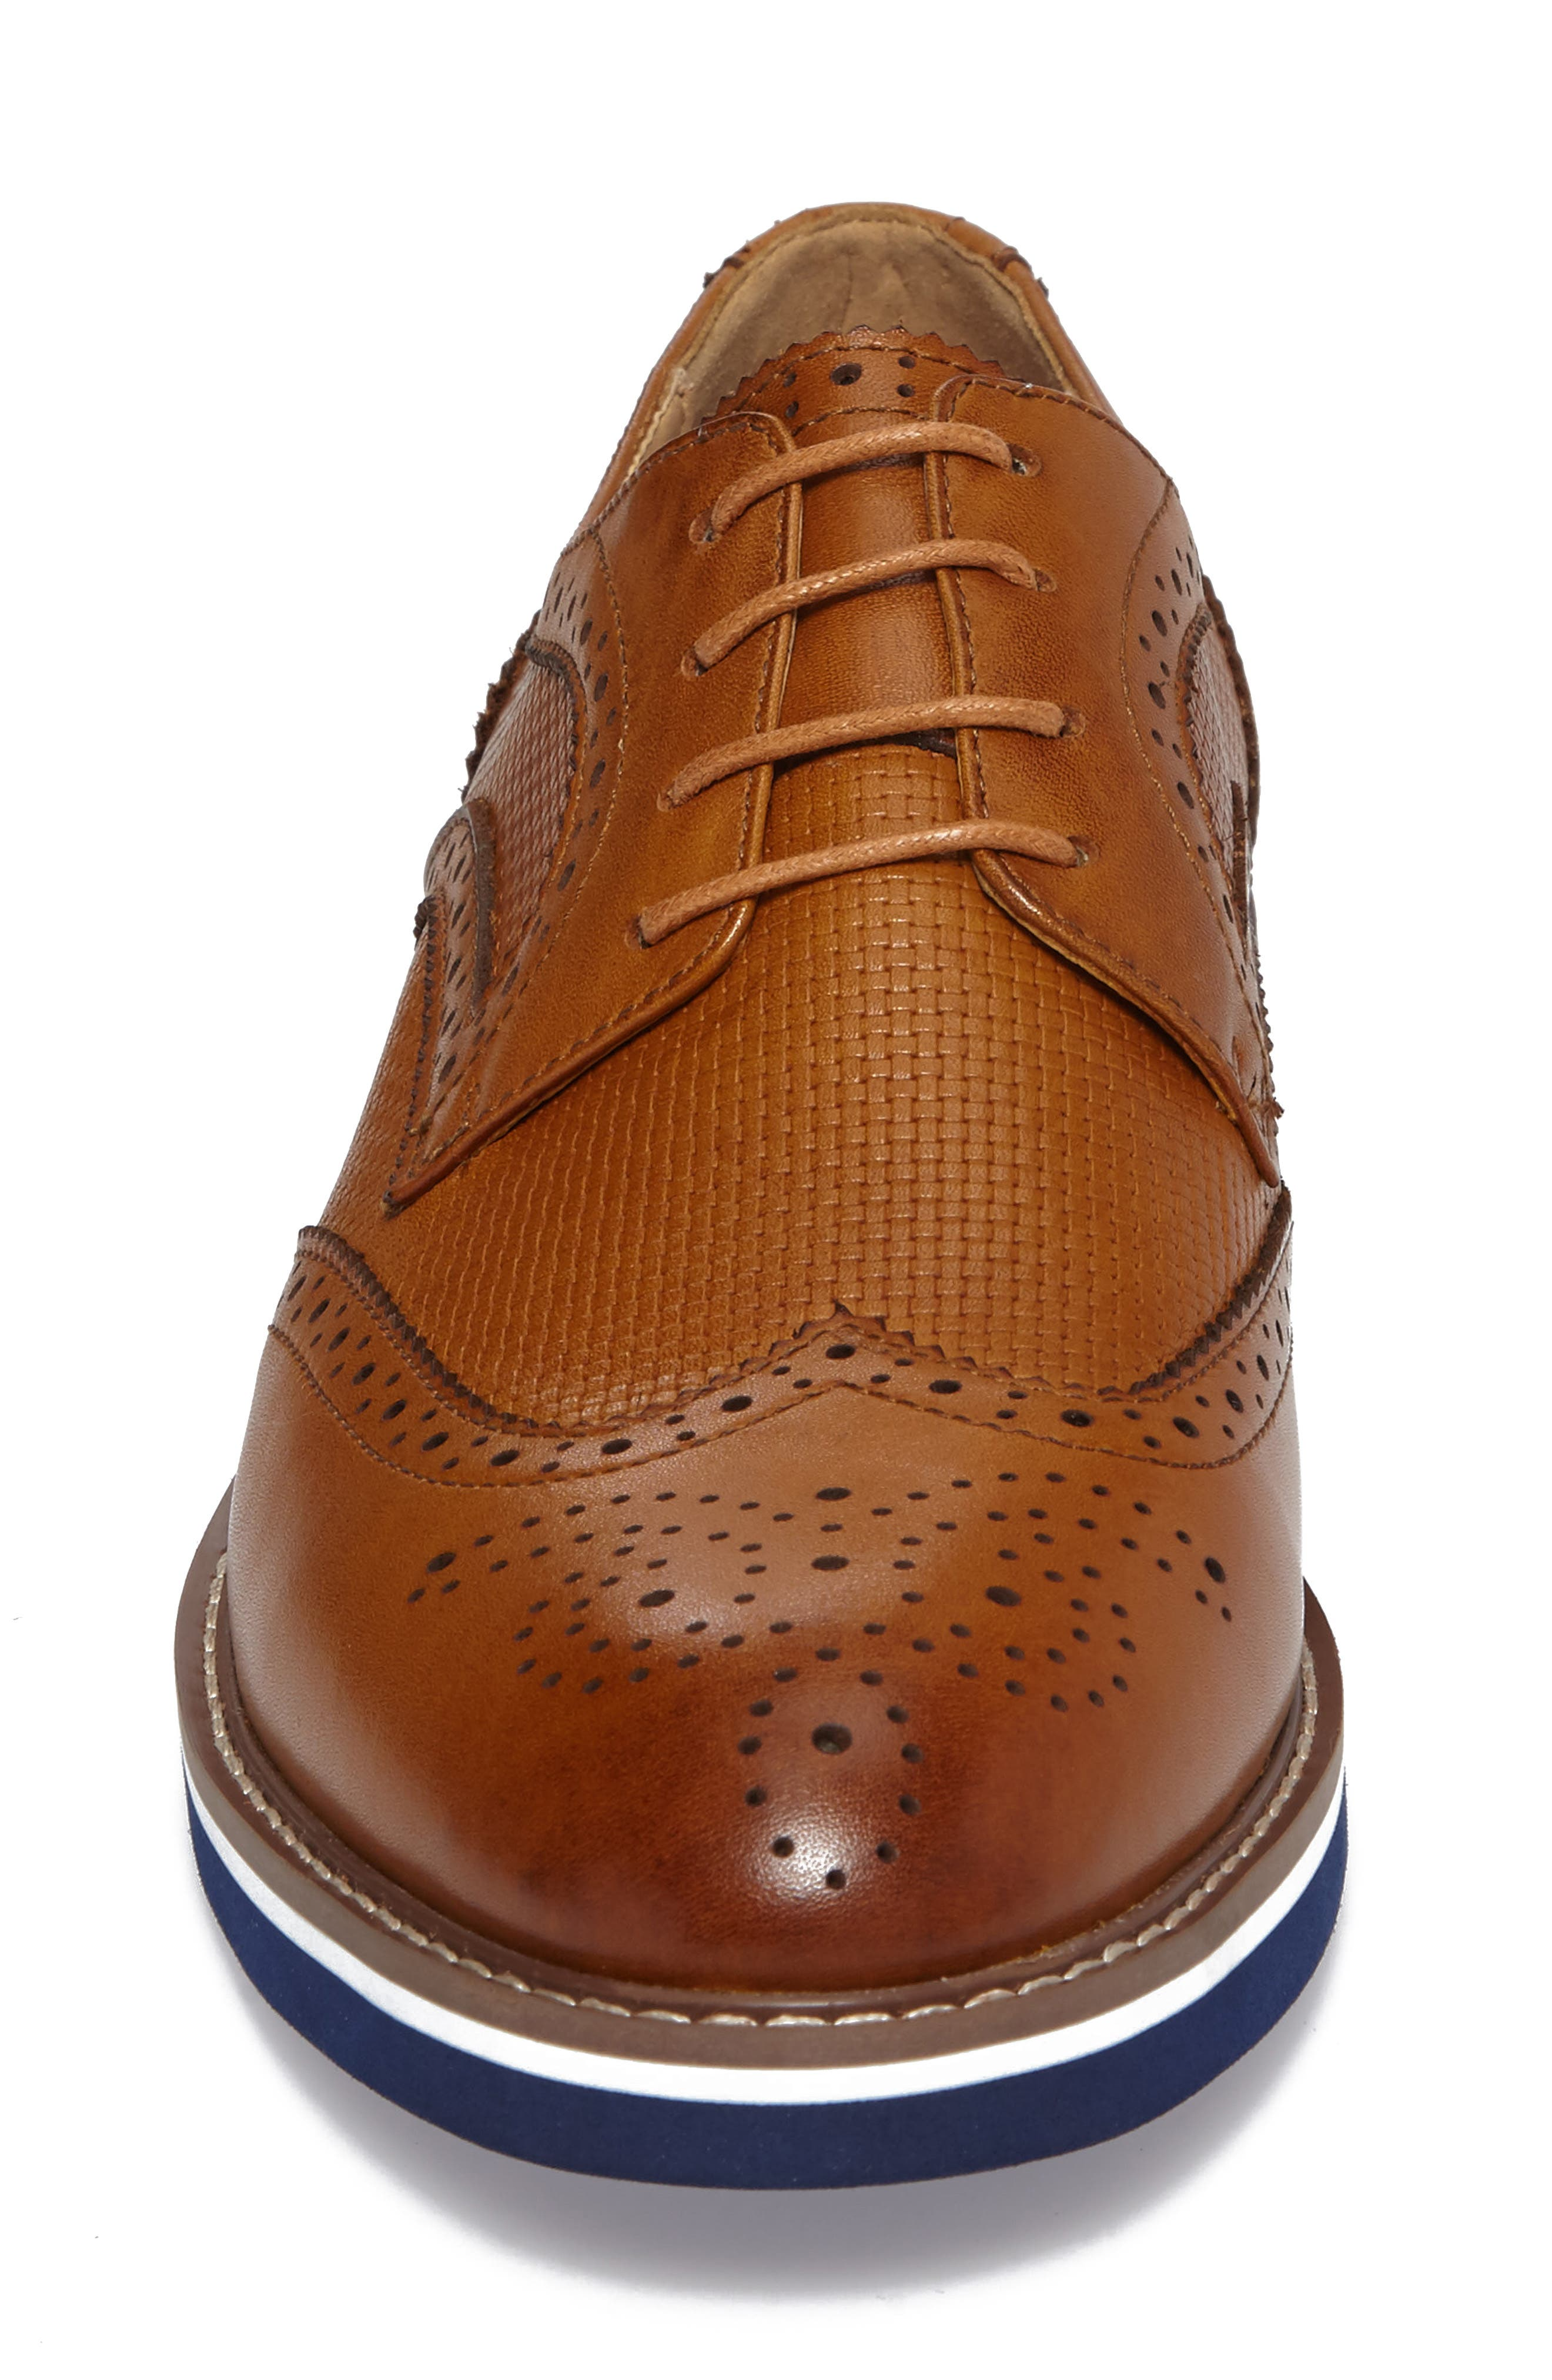 Northfields Spectator Shoe,                             Alternate thumbnail 4, color,                             Cognac Leather